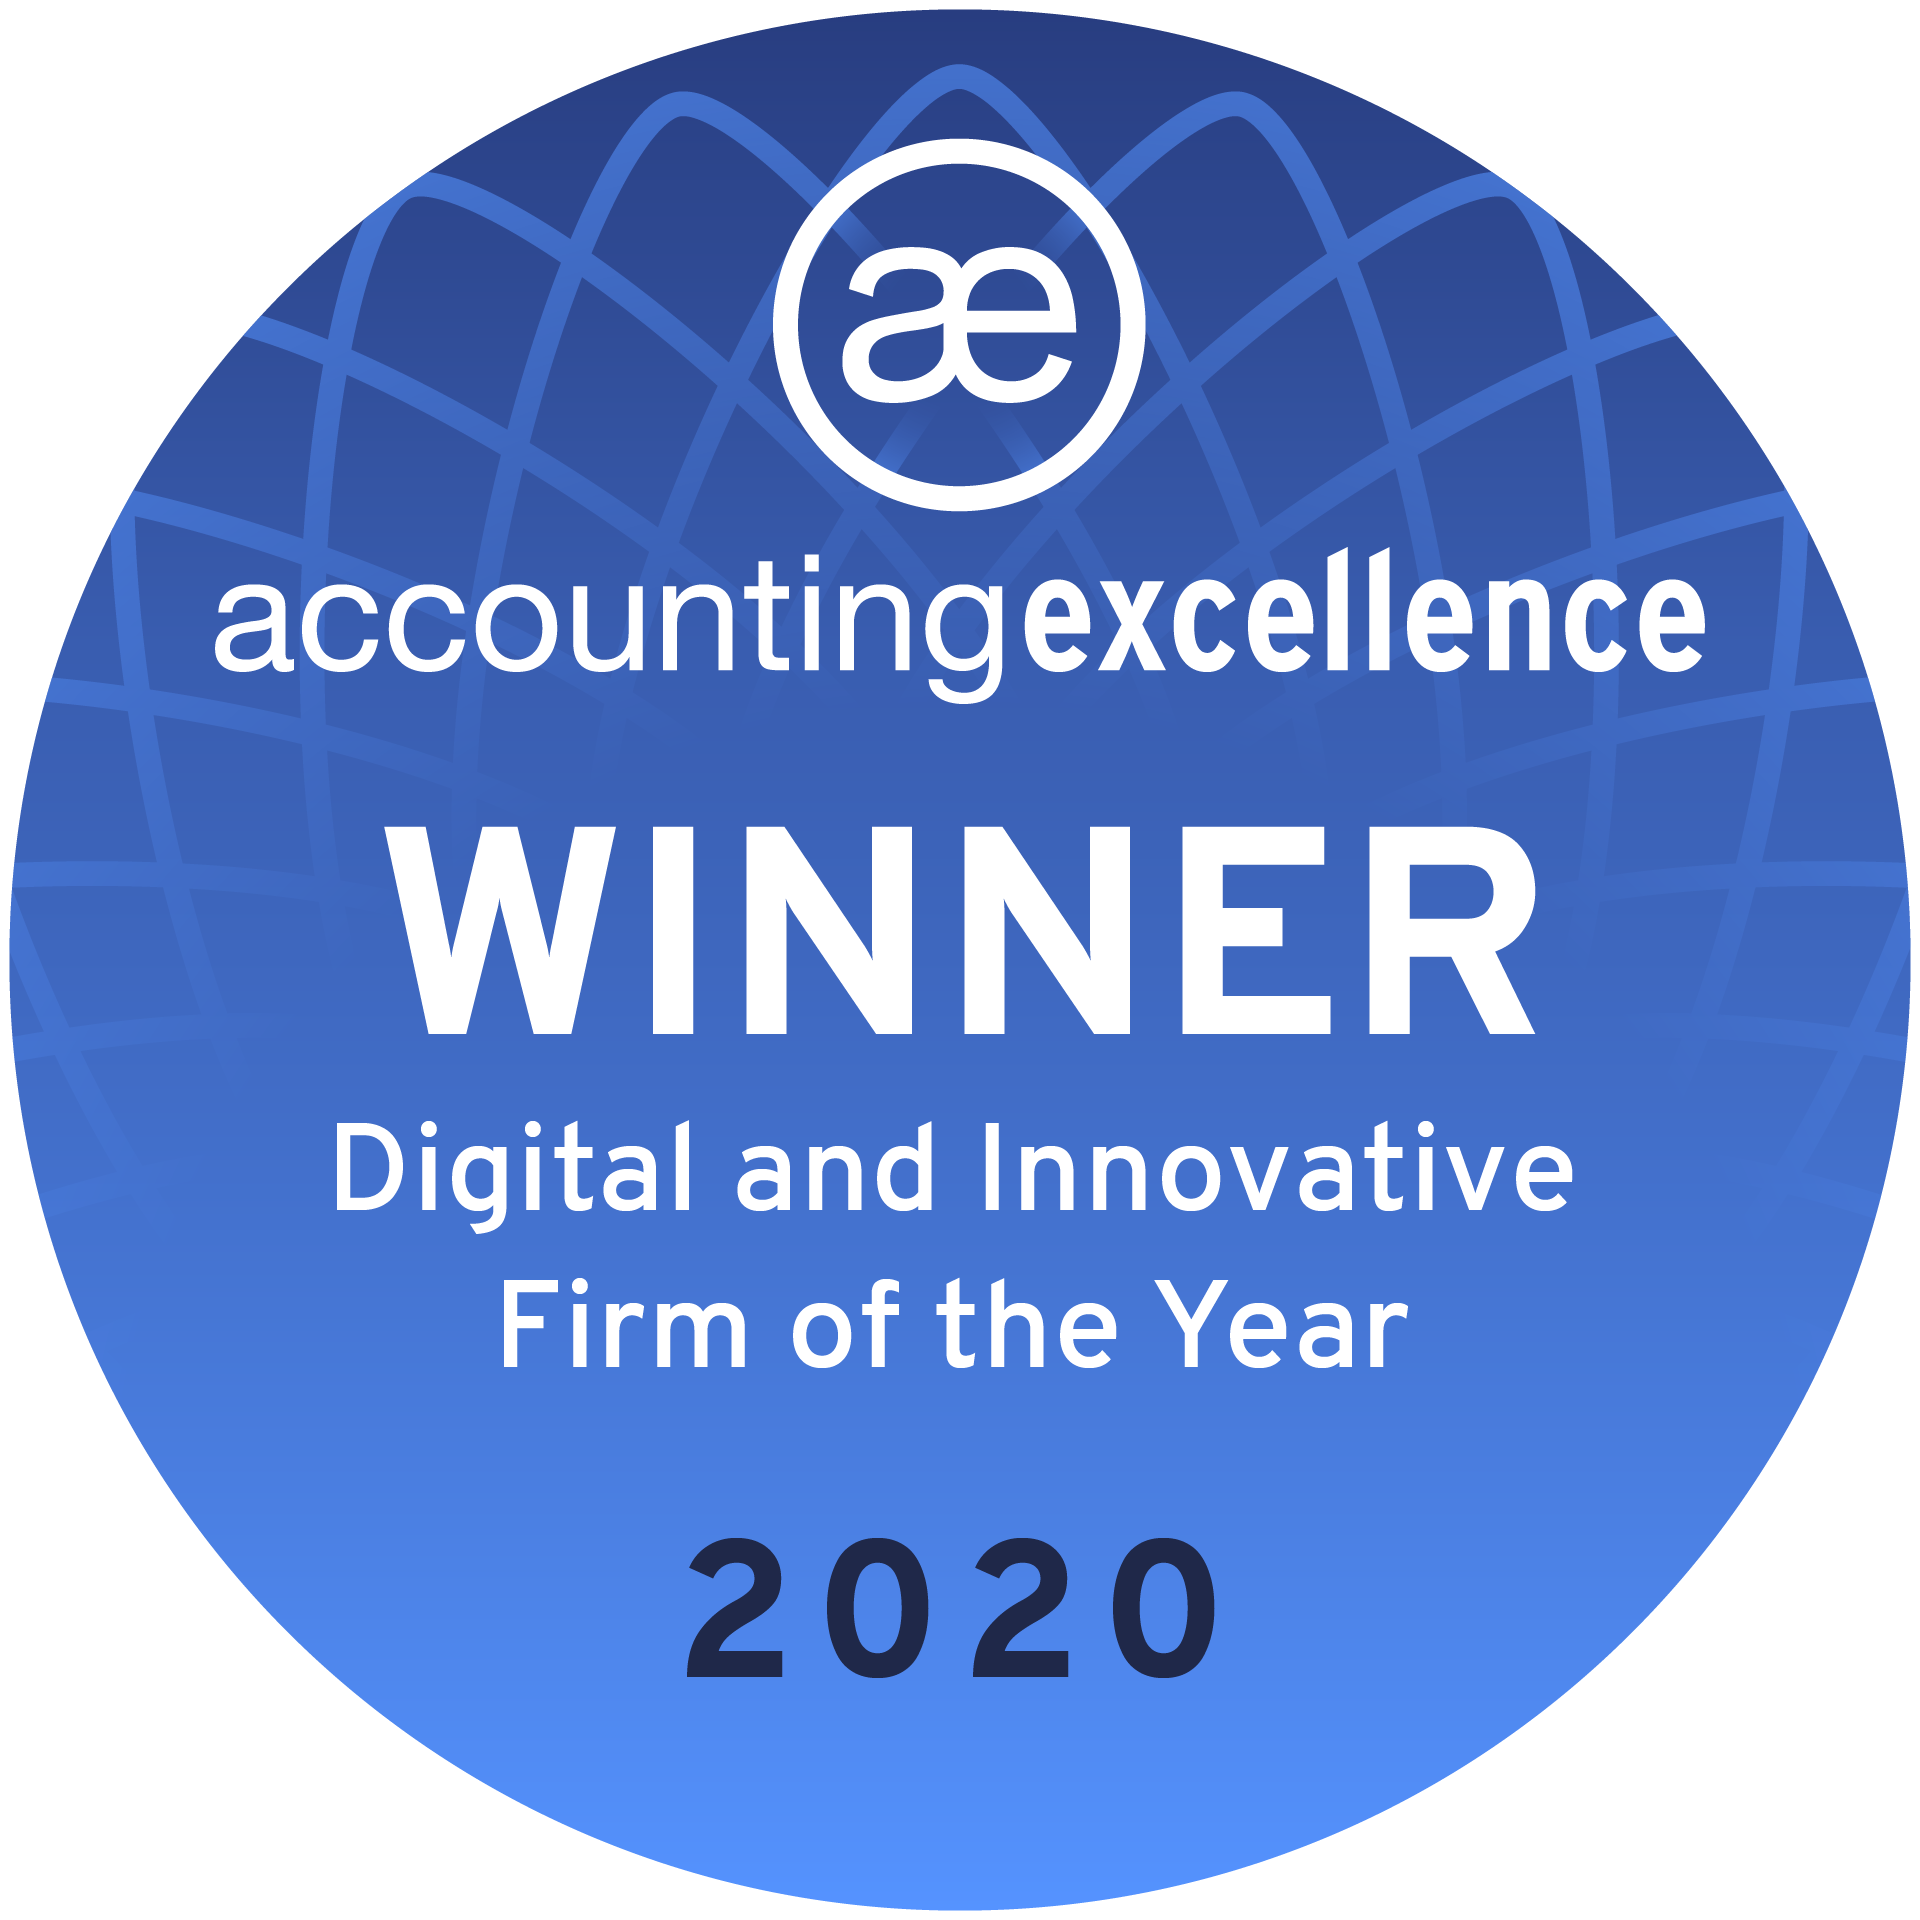 Digital-and-Innovative-Firm-of-the-Year---Winner-Badge